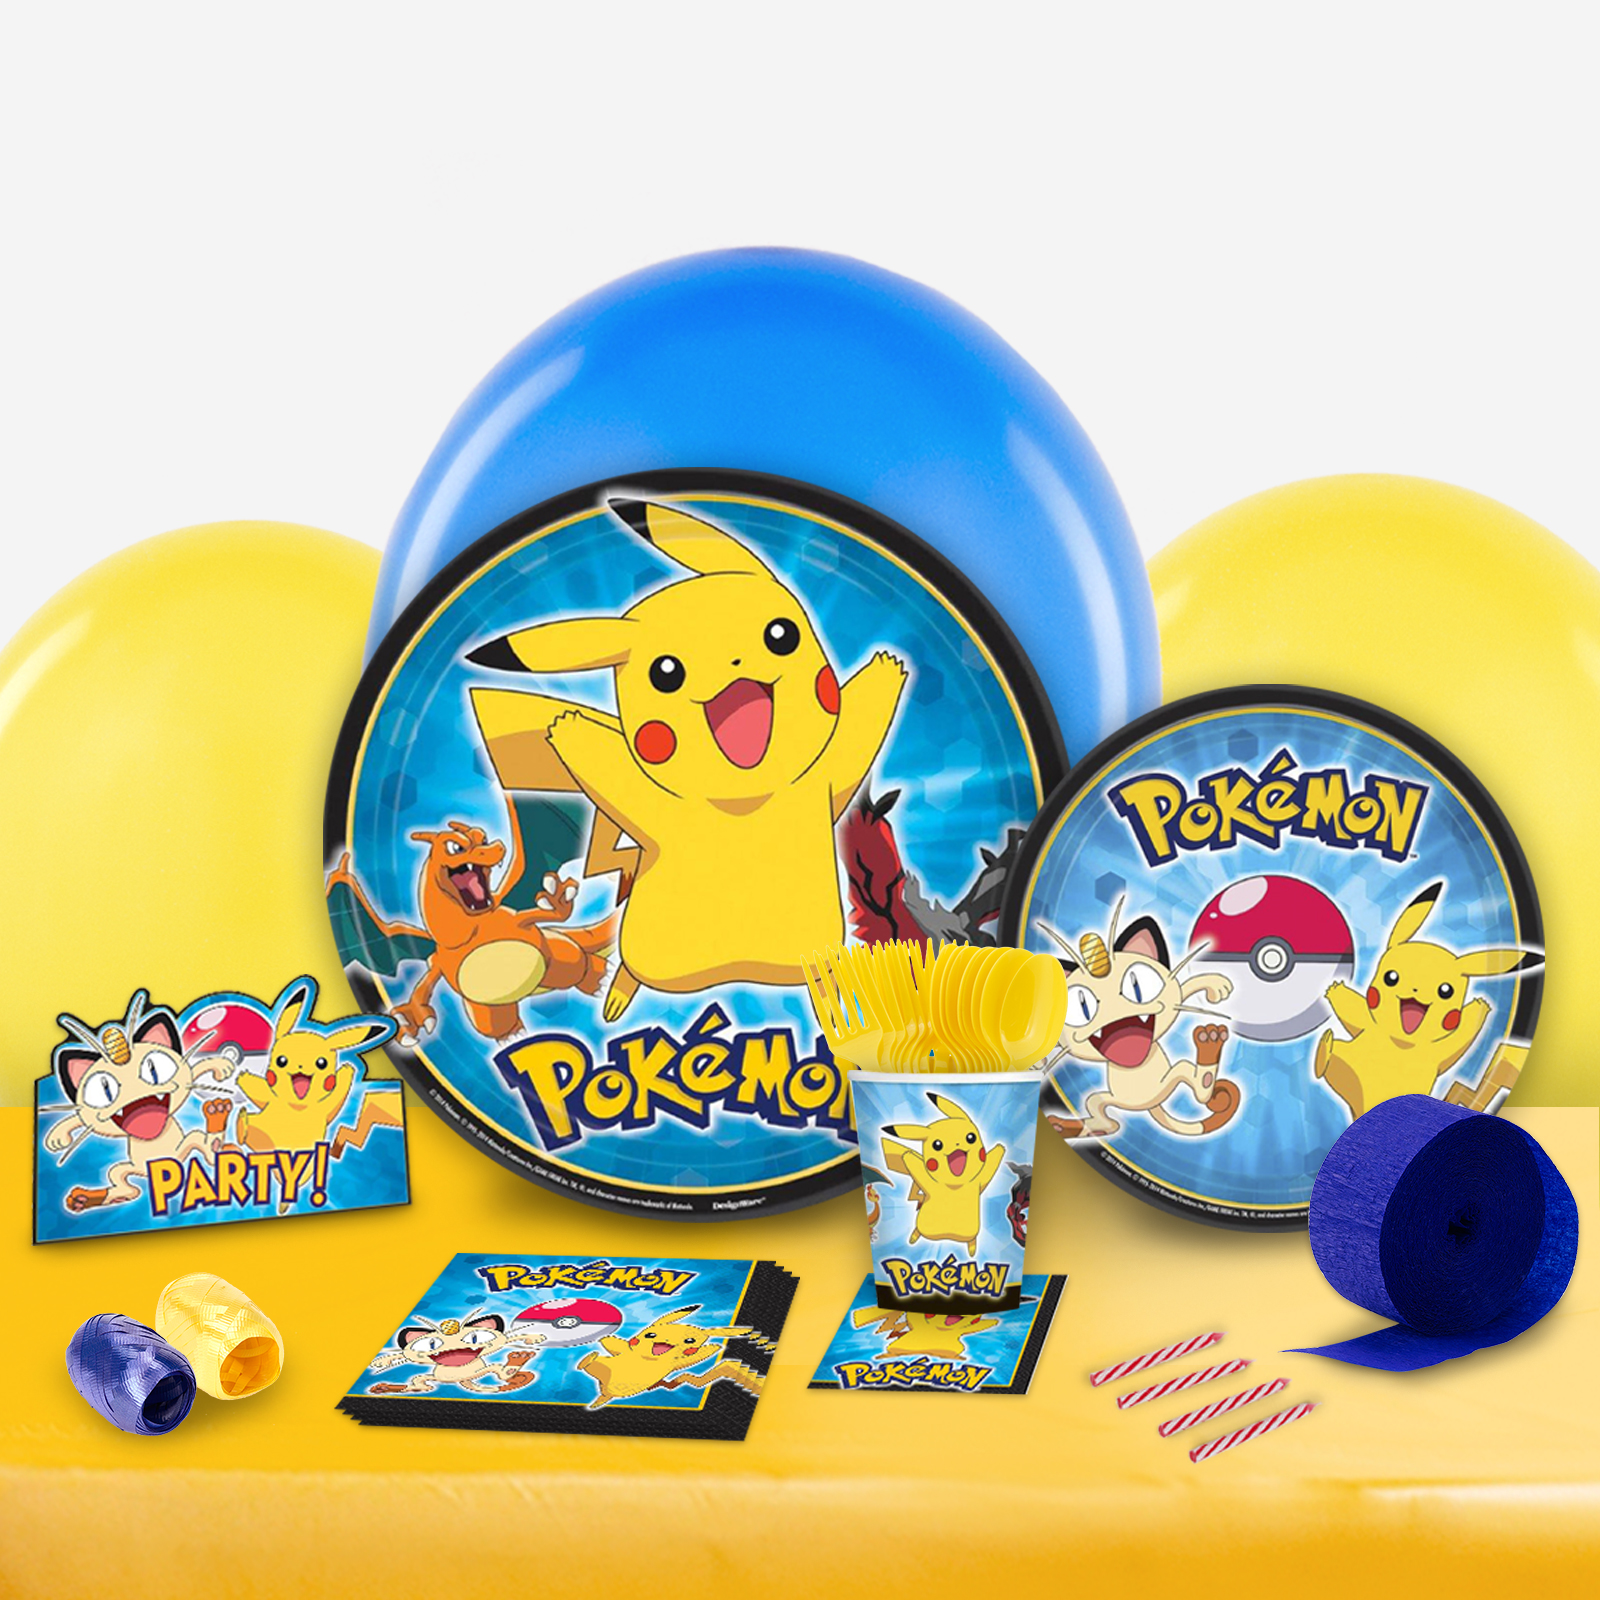 Pokemon Party in a Box-Basic